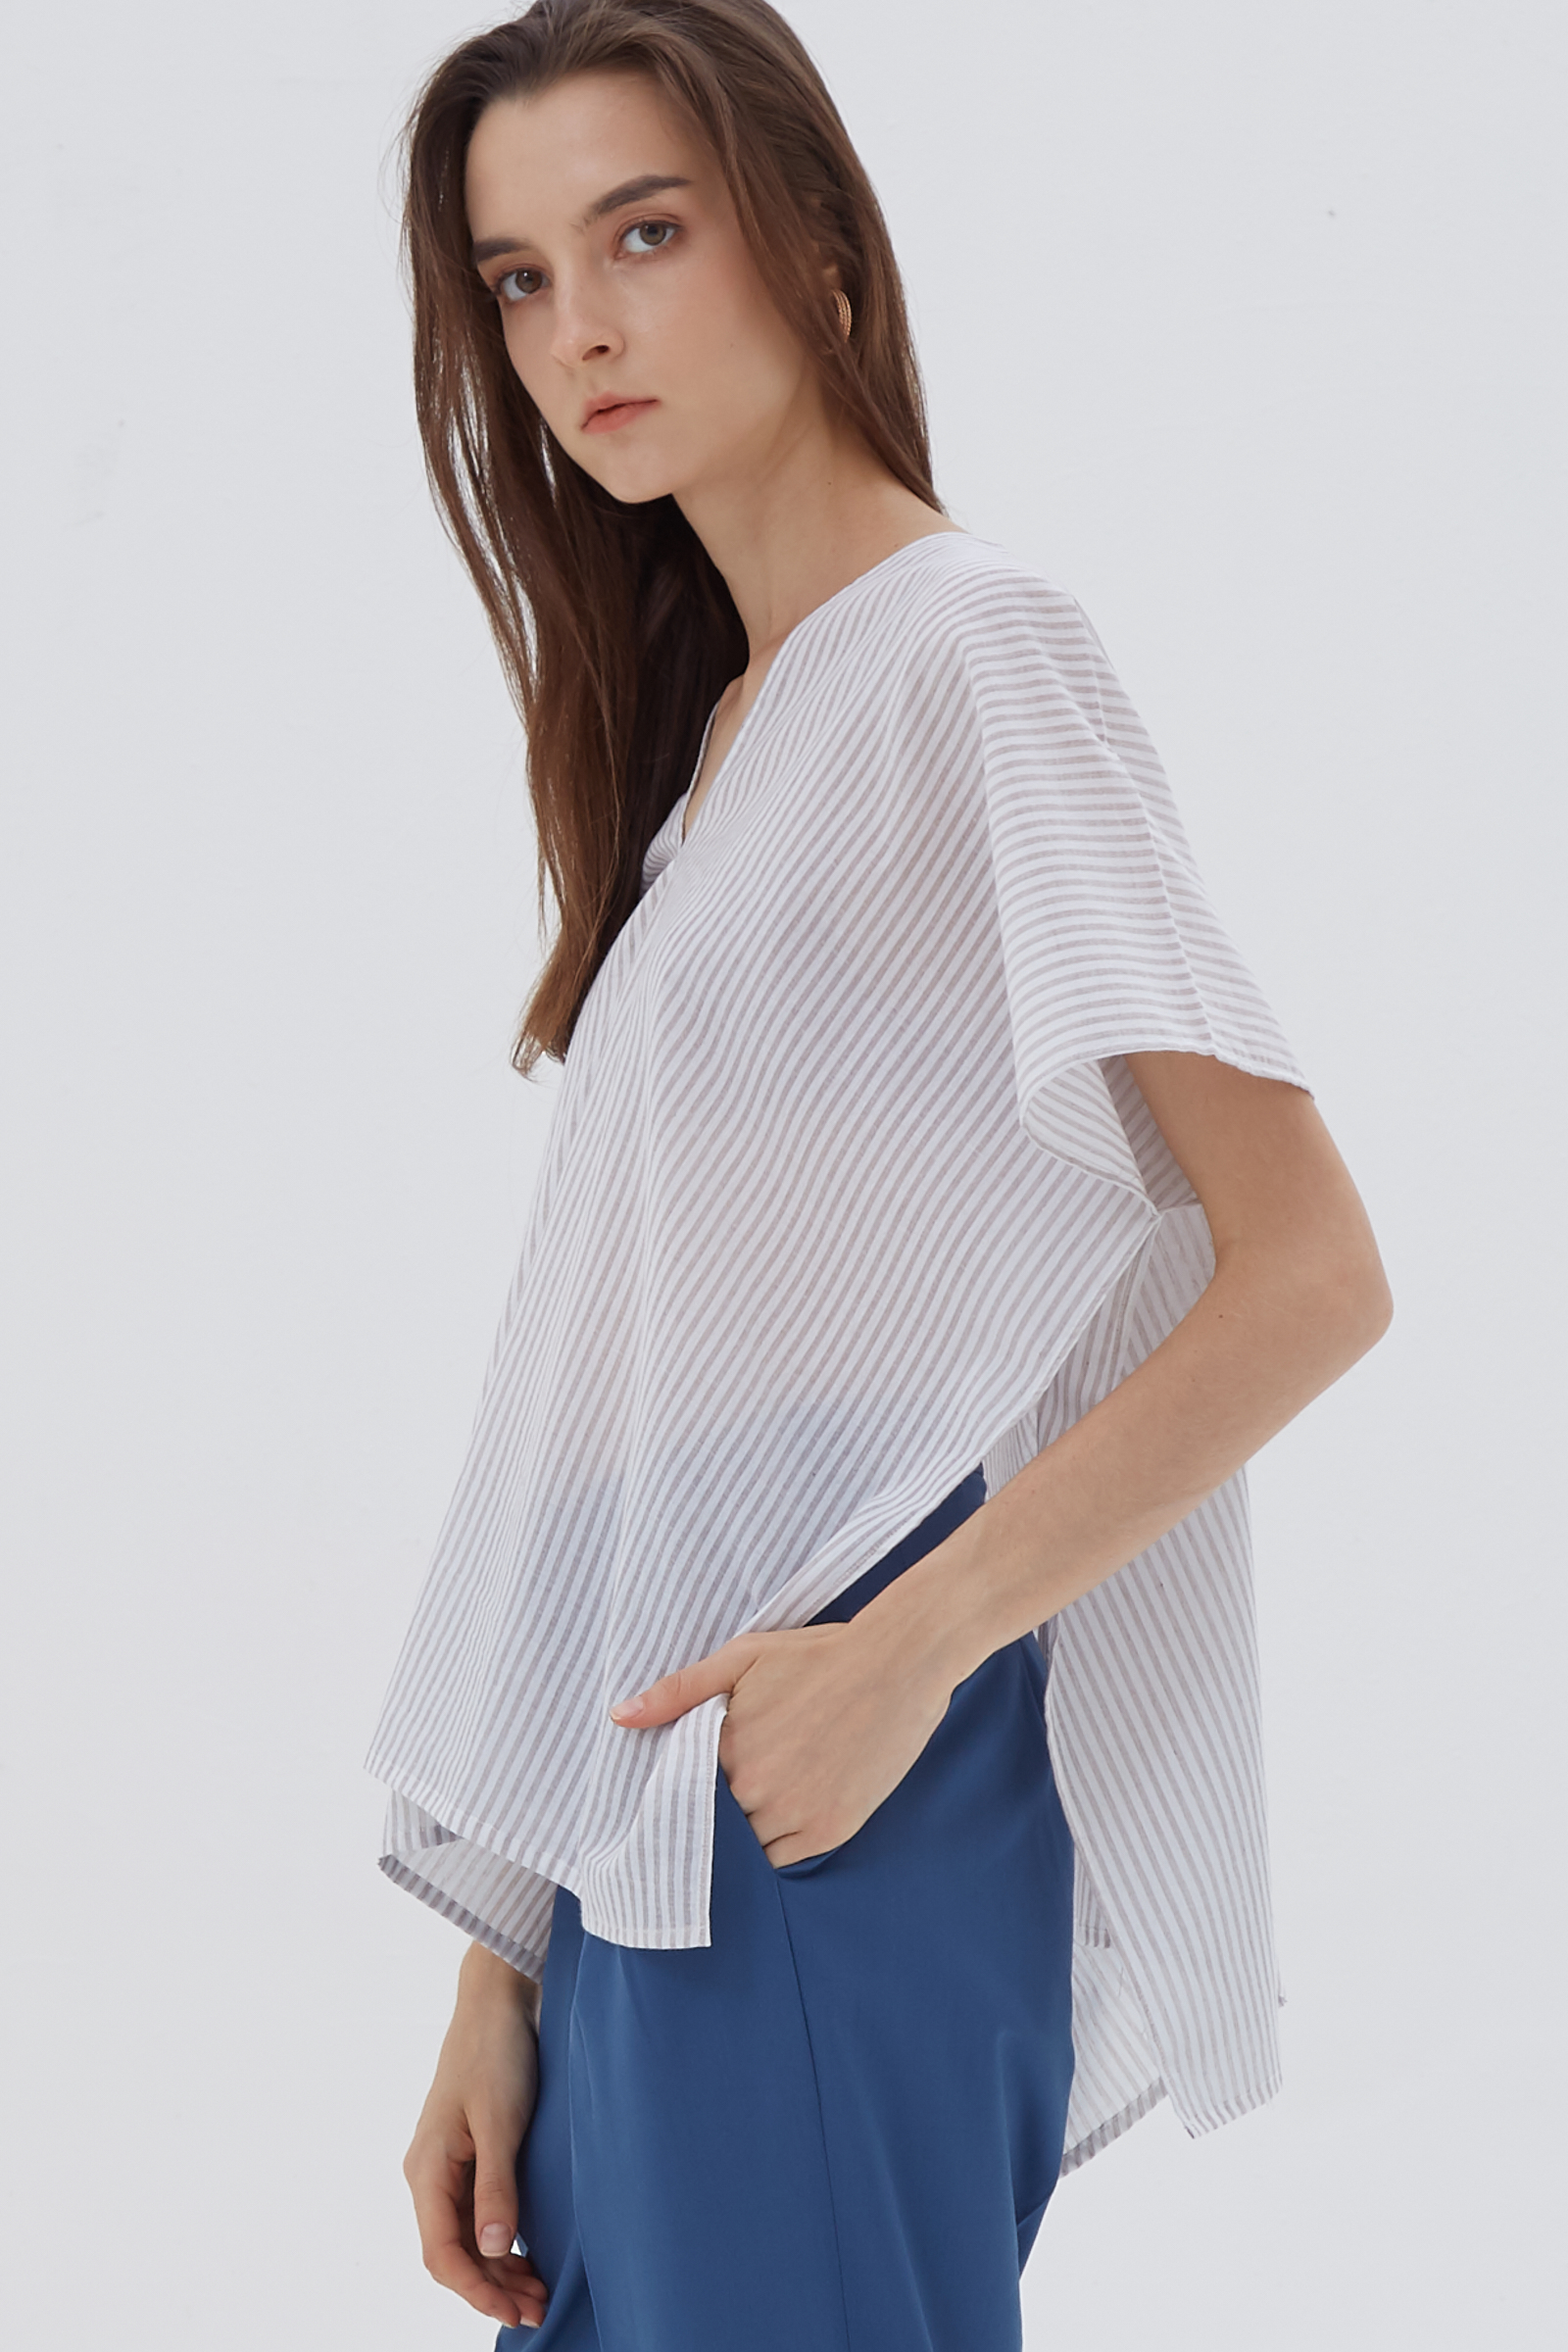 Shopatvelvet Rae Top